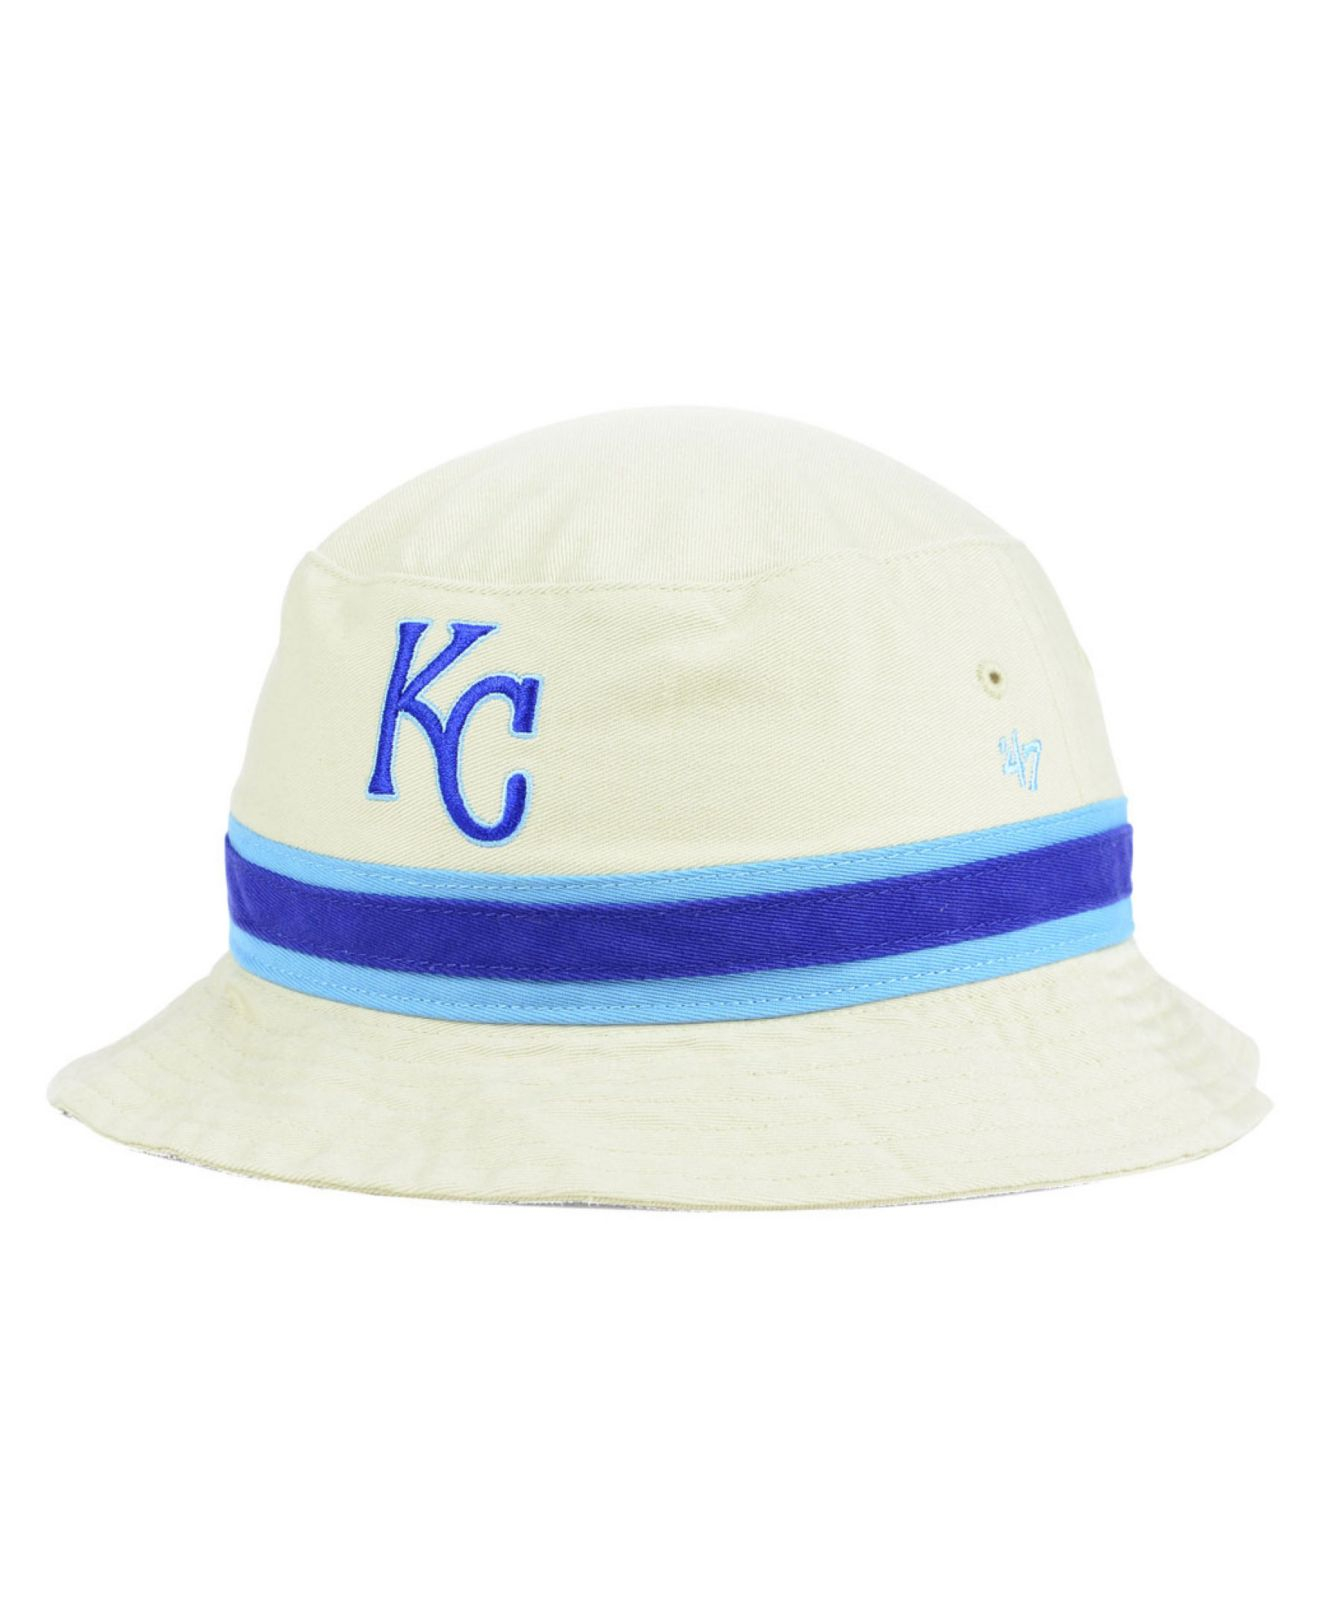 8c01217a715 ... promo code for lyst 47 brand kansas city royals striped bucket hat in  white for men